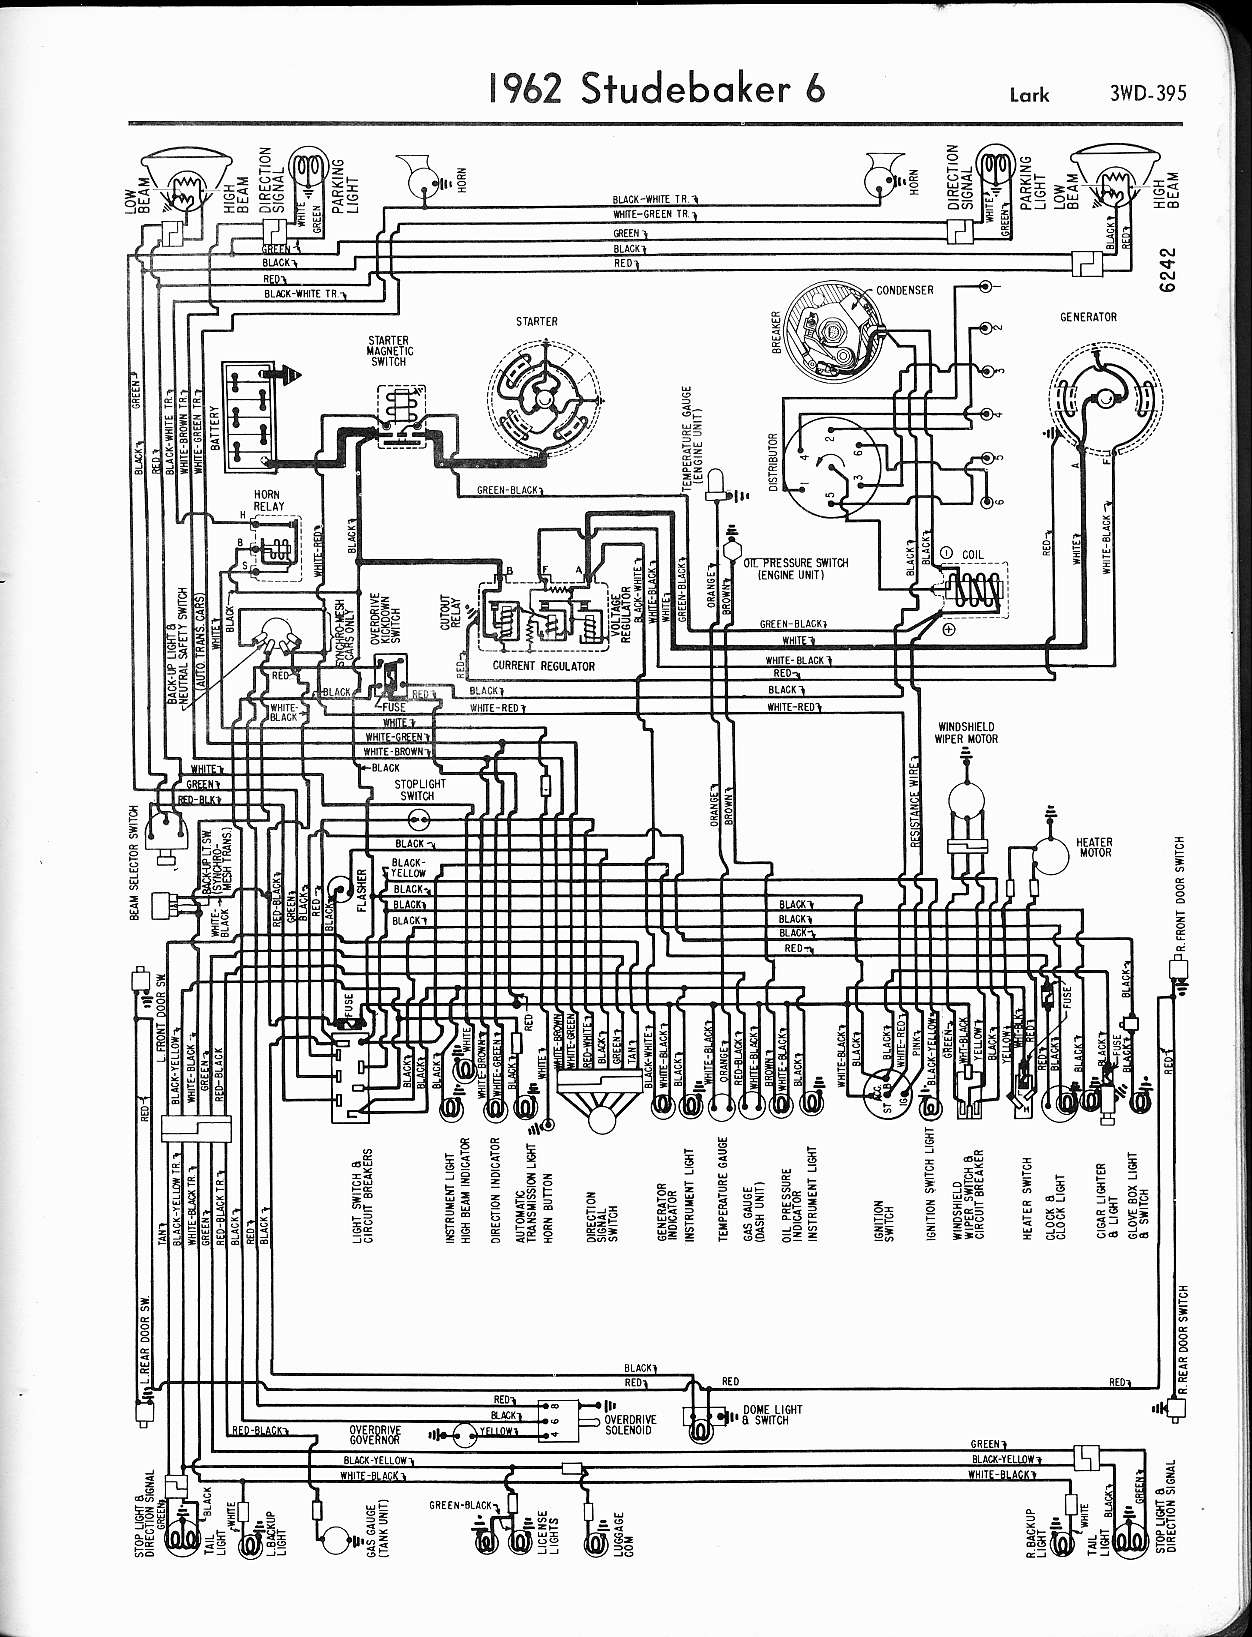 [DIAGRAM_38YU]  Lark Wiring Diagram - Honda Passport Fuse Box Diagram for Wiring Diagram  Schematics | Lark Wiring Diagram |  | Wiring Diagram Schematics